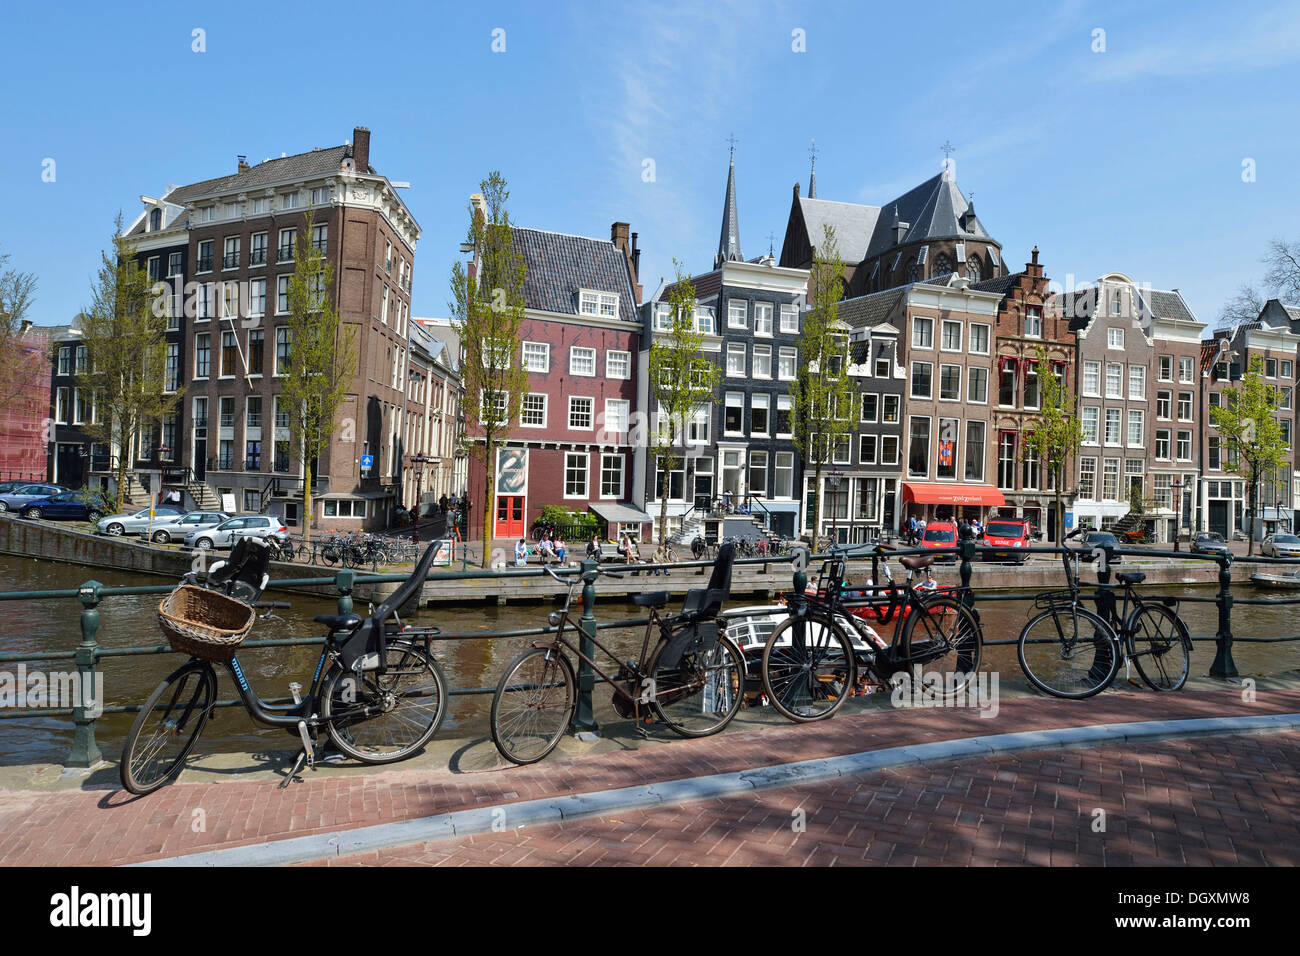 Historical merchants' houses on the Herengracht canal in the historic centre, several old bicycles at front, Amsterdam - Stock Image